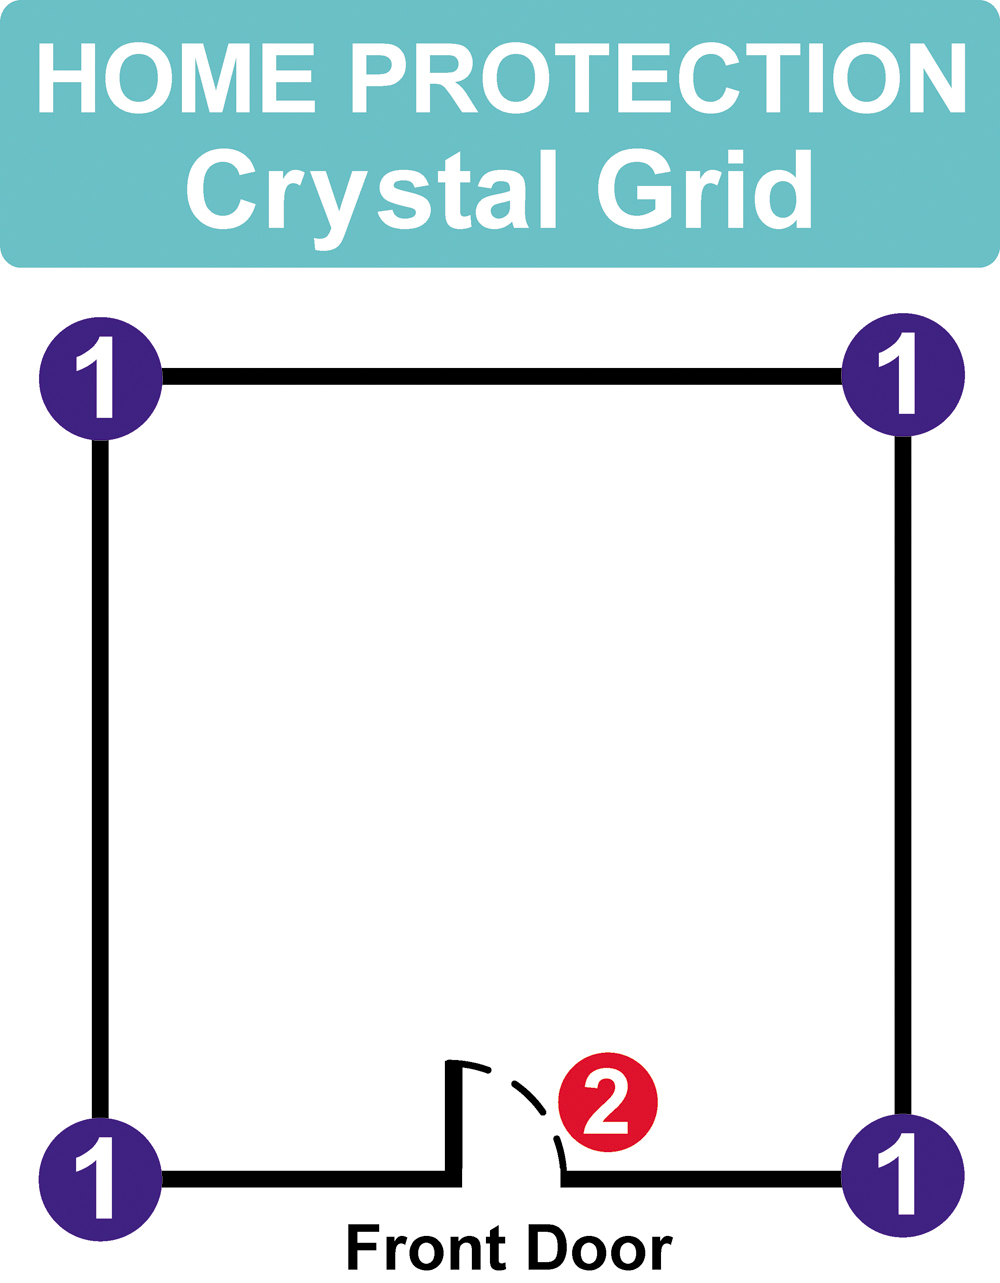 Home protection crystal grid diagram